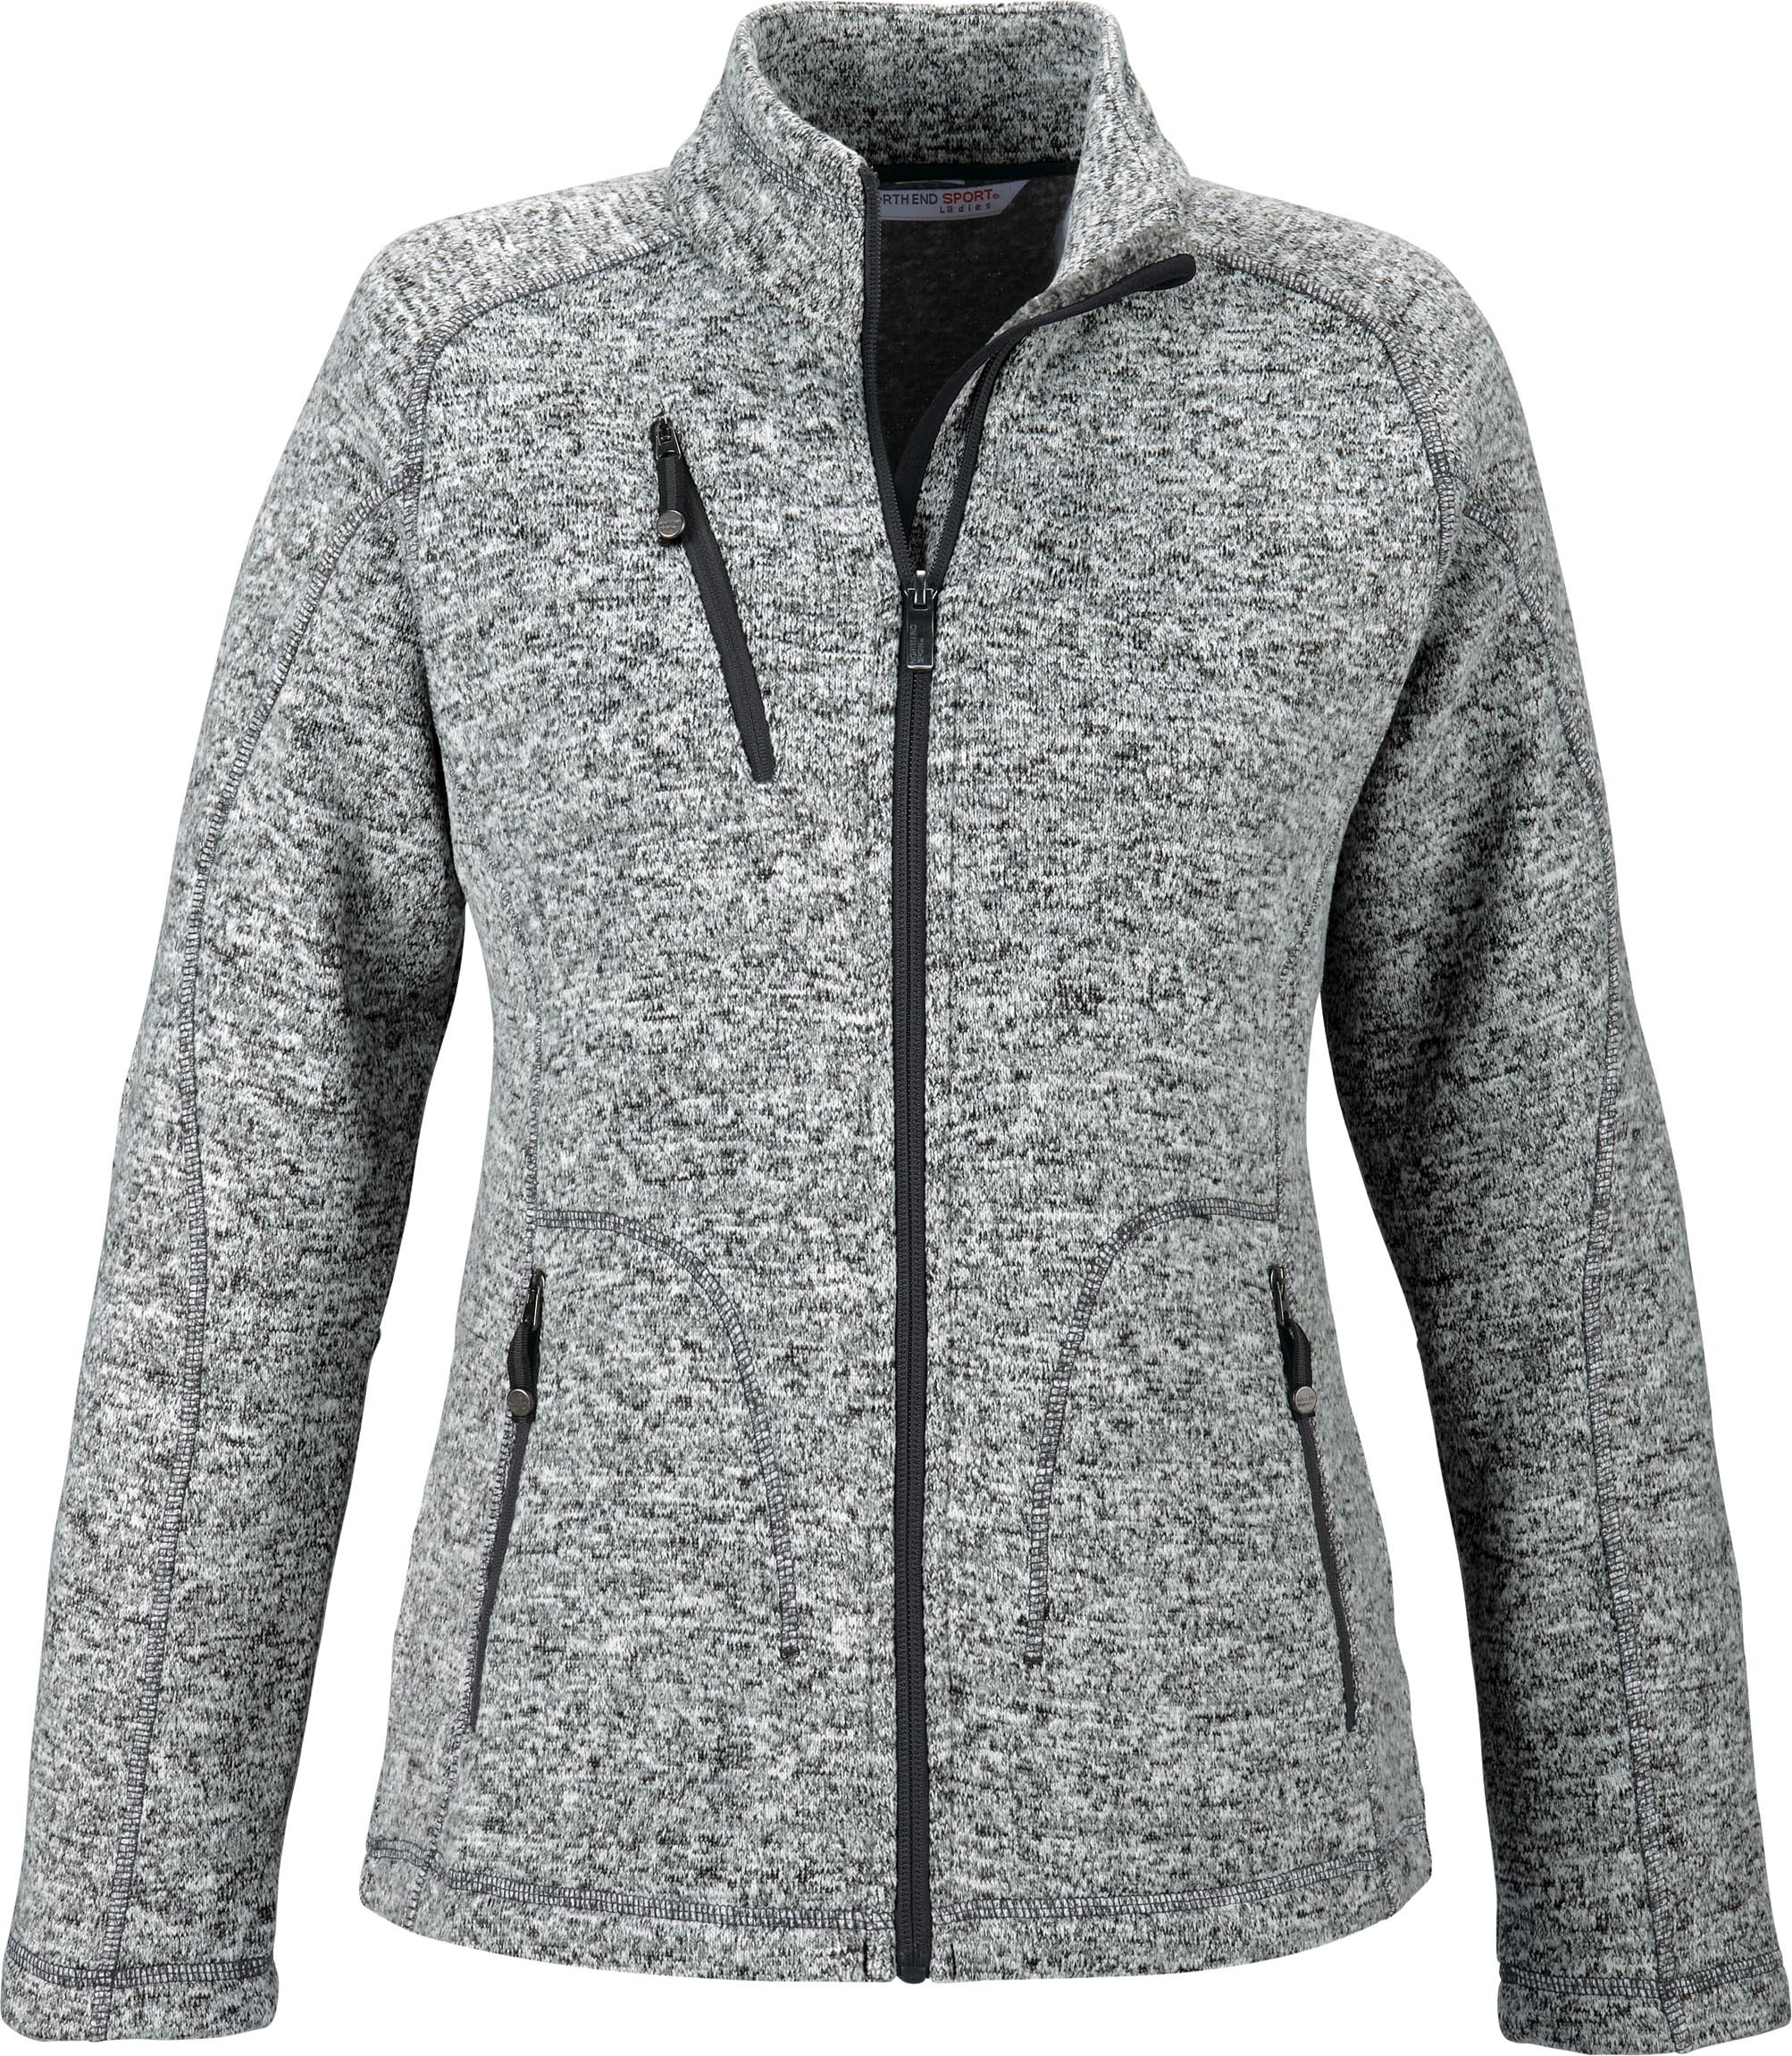 Timberland Poly Fleece Jacket 13tl001 - from $19.38